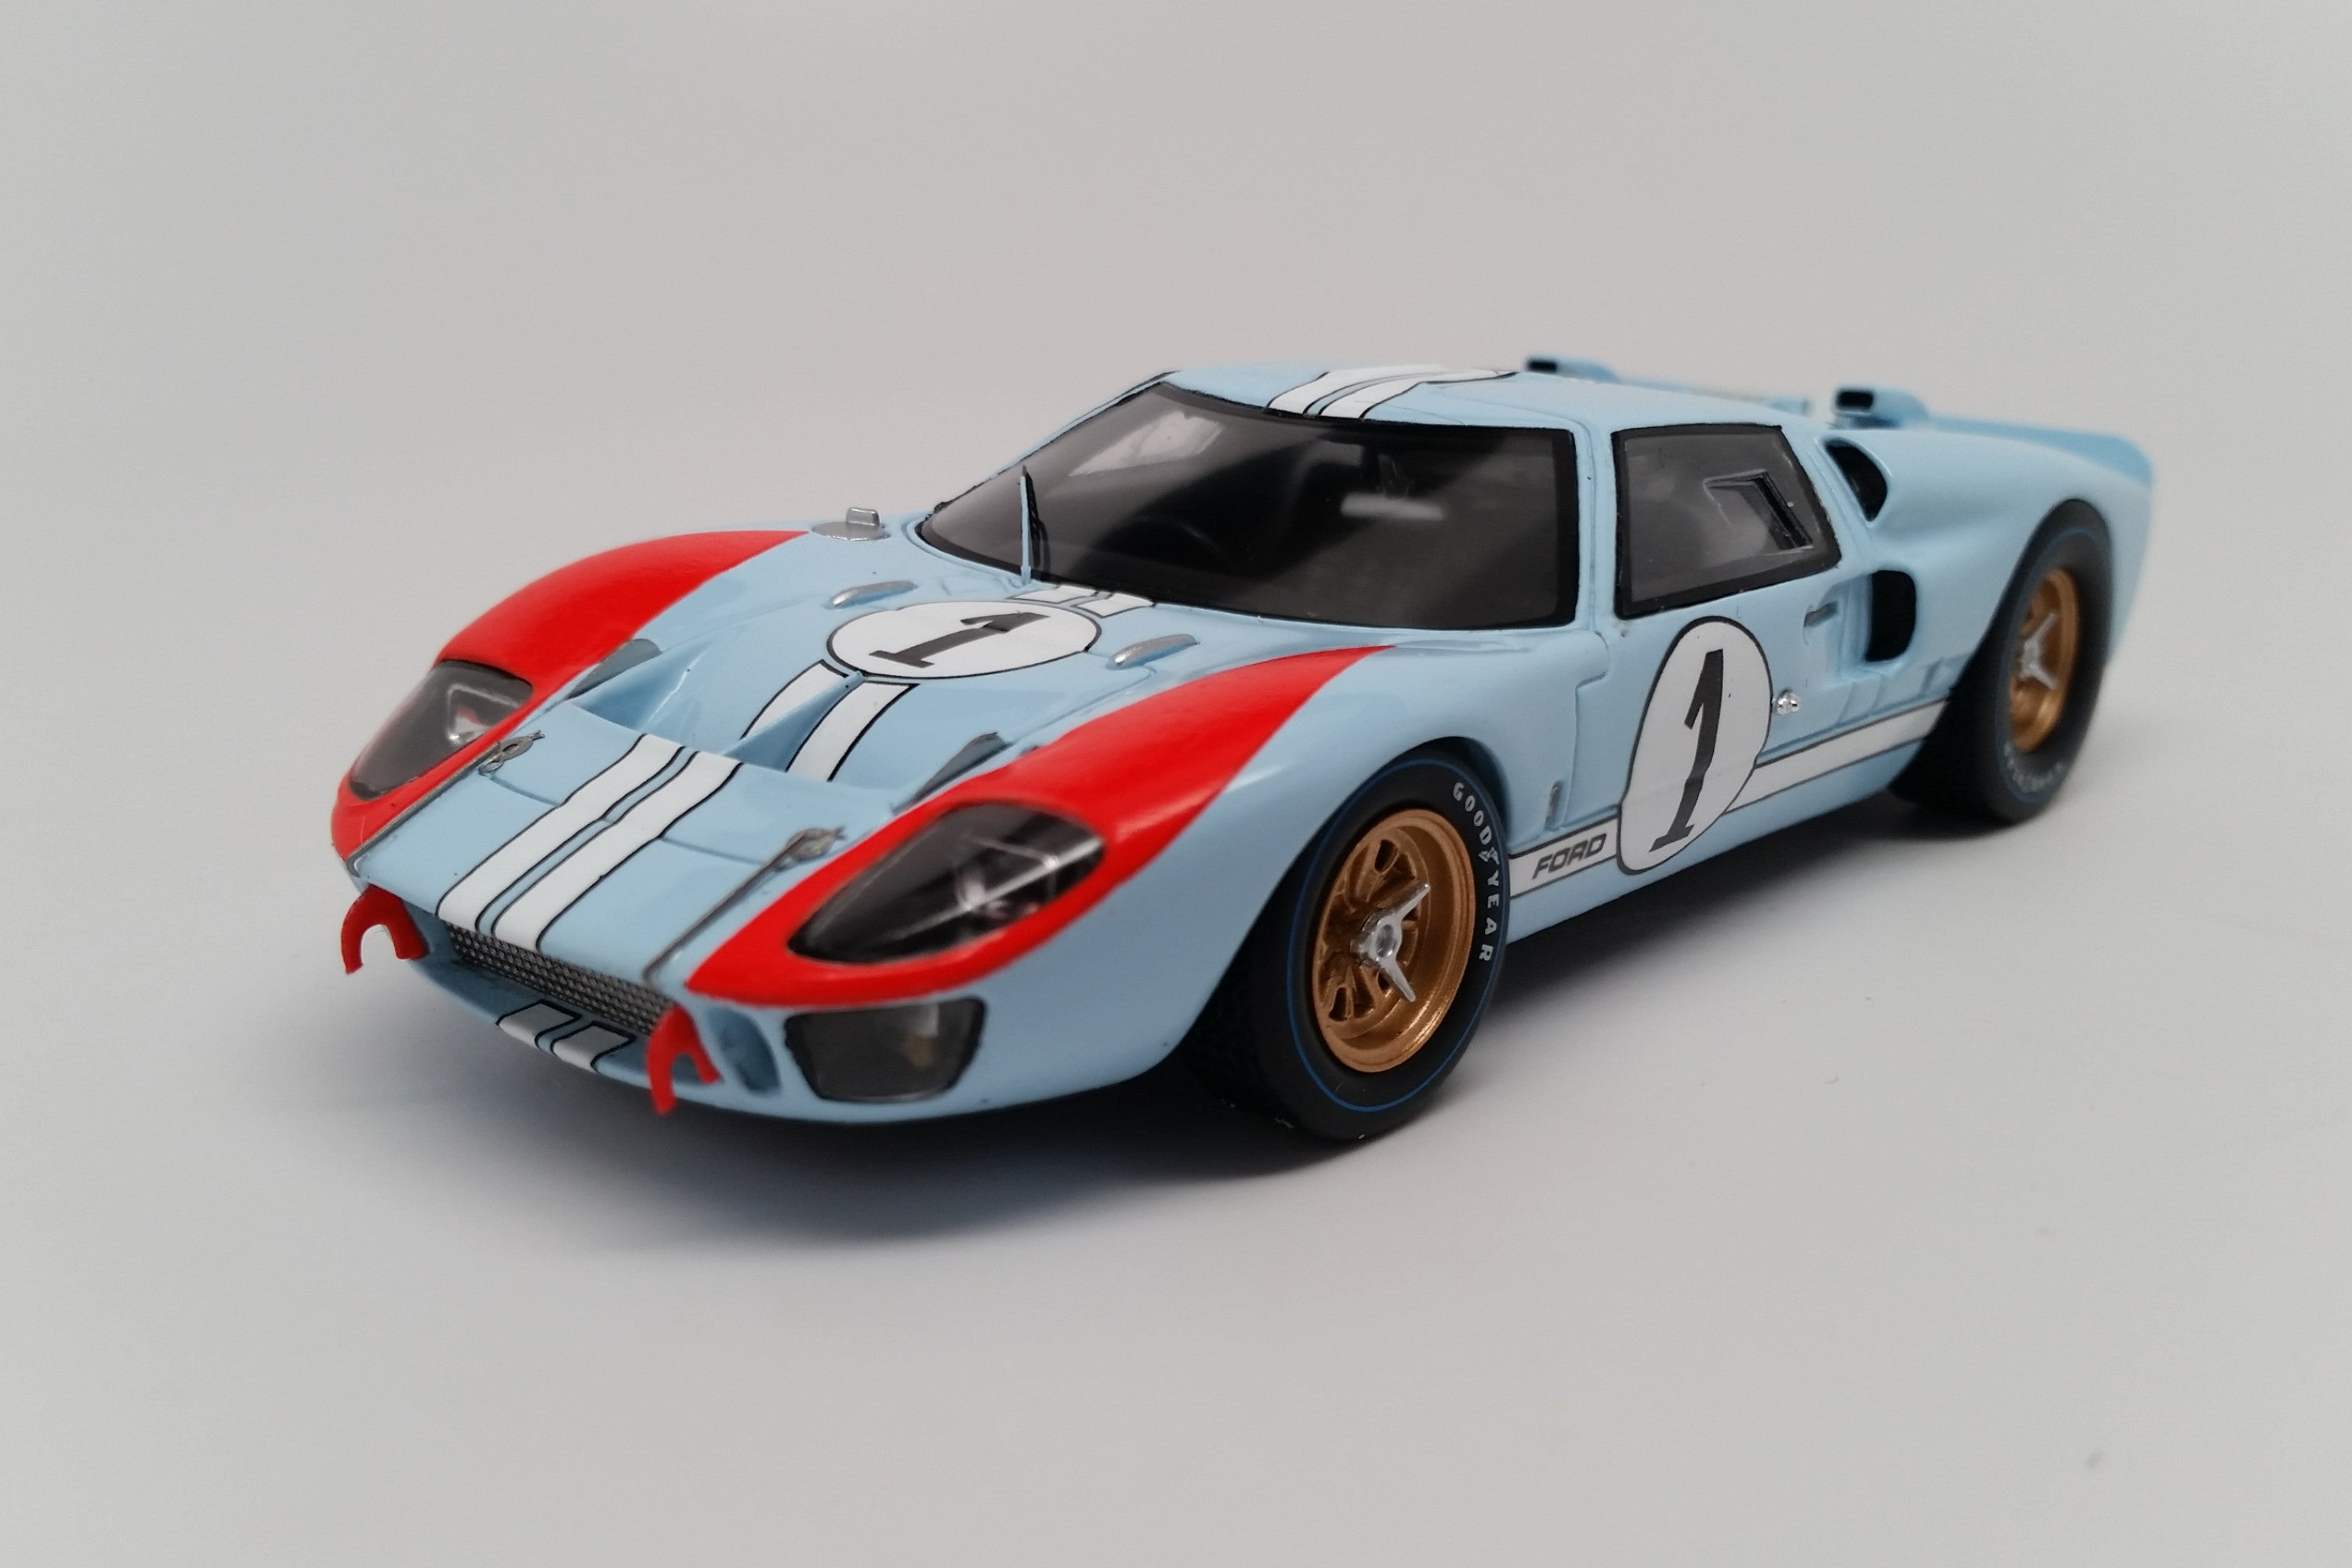 Ford Mk. II (1966 Le Mans - Ken Miles) | 1:43 Scale Model Car by Spark | Front Quarter